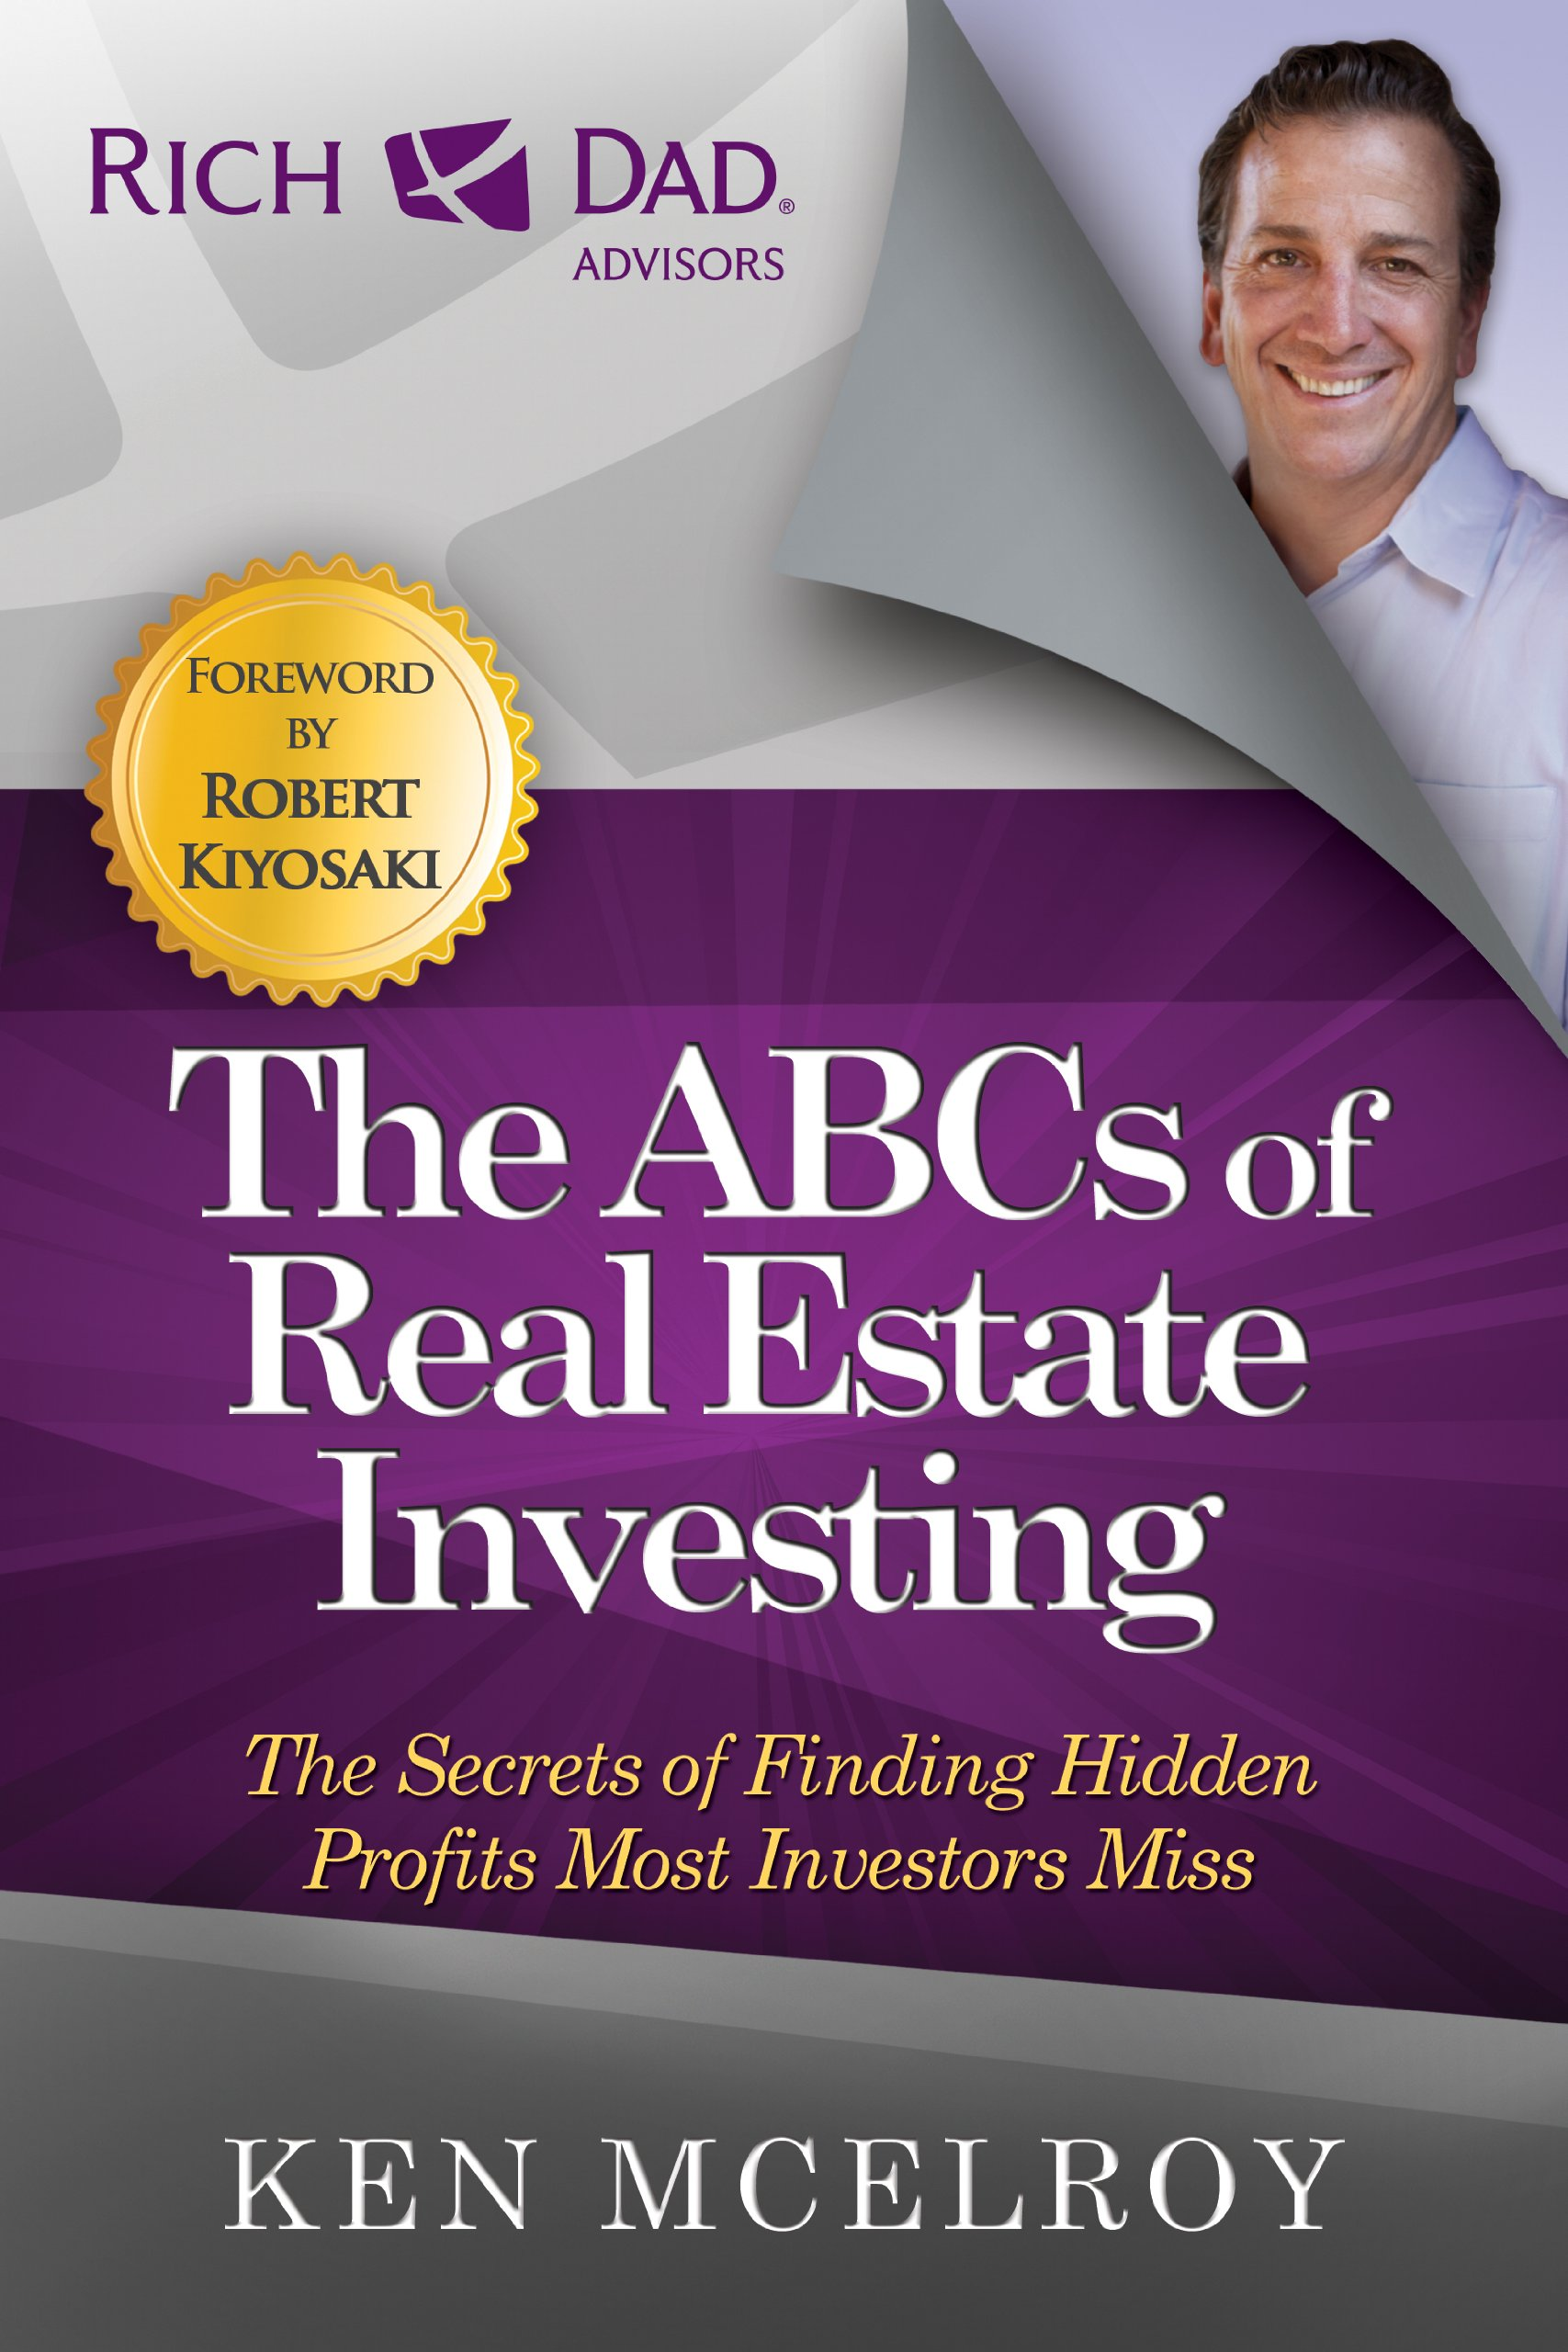 The ABCs of Real Estate Investing: The Secrets of Finding Hidden Profits  Most Investors Miss (Rich Dad's Advisors (Paperback)): Ken McElroy:  8601400316955: ...